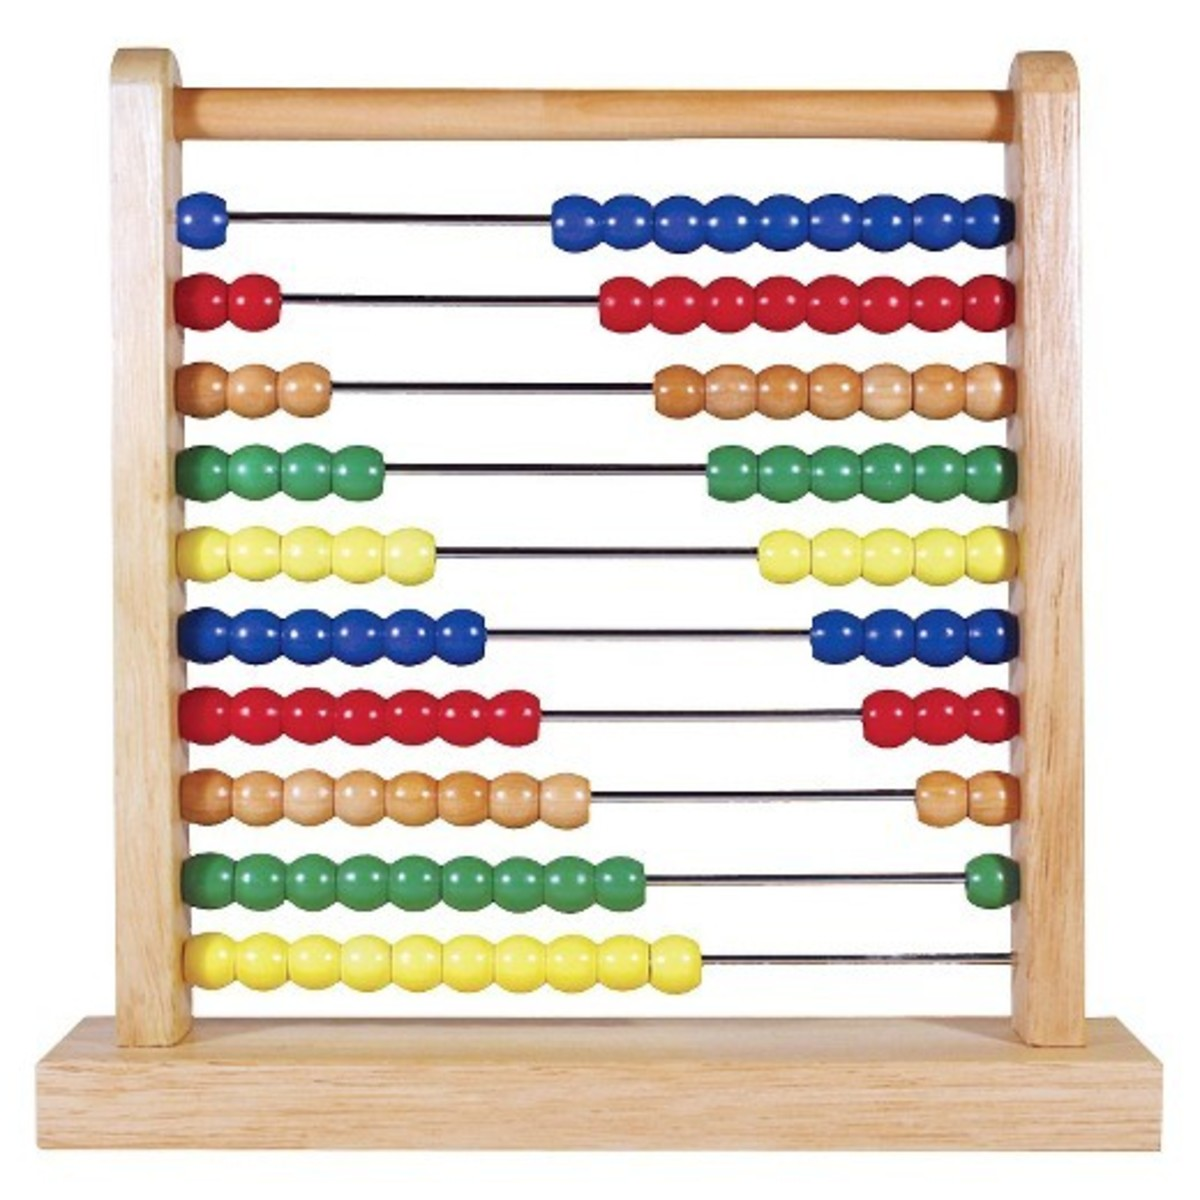 Abacus: The Asian Way to Calculate